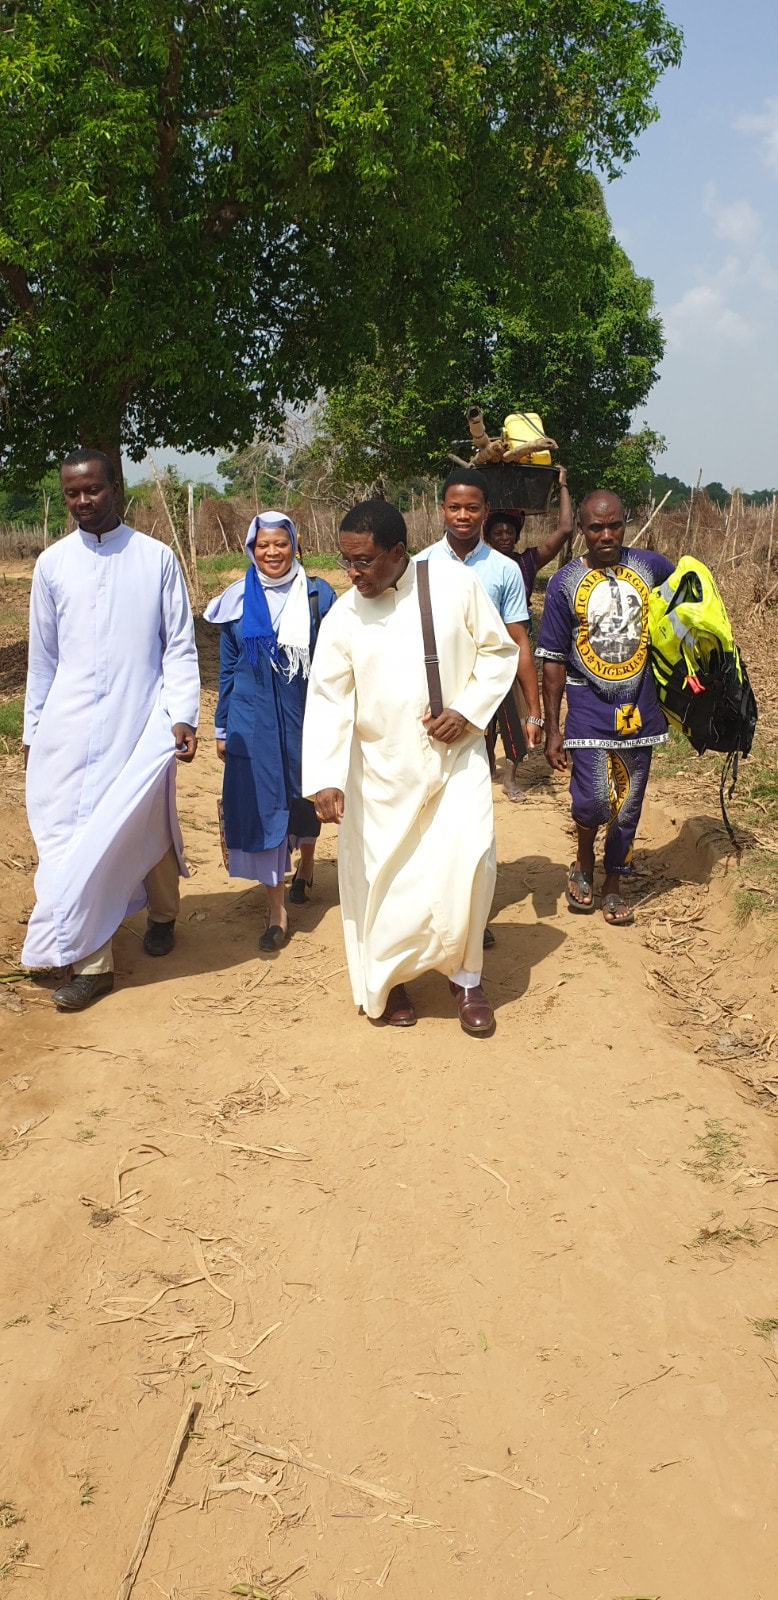 On foot trekking into Igbedor. We must take the Gospel to ends of the world!